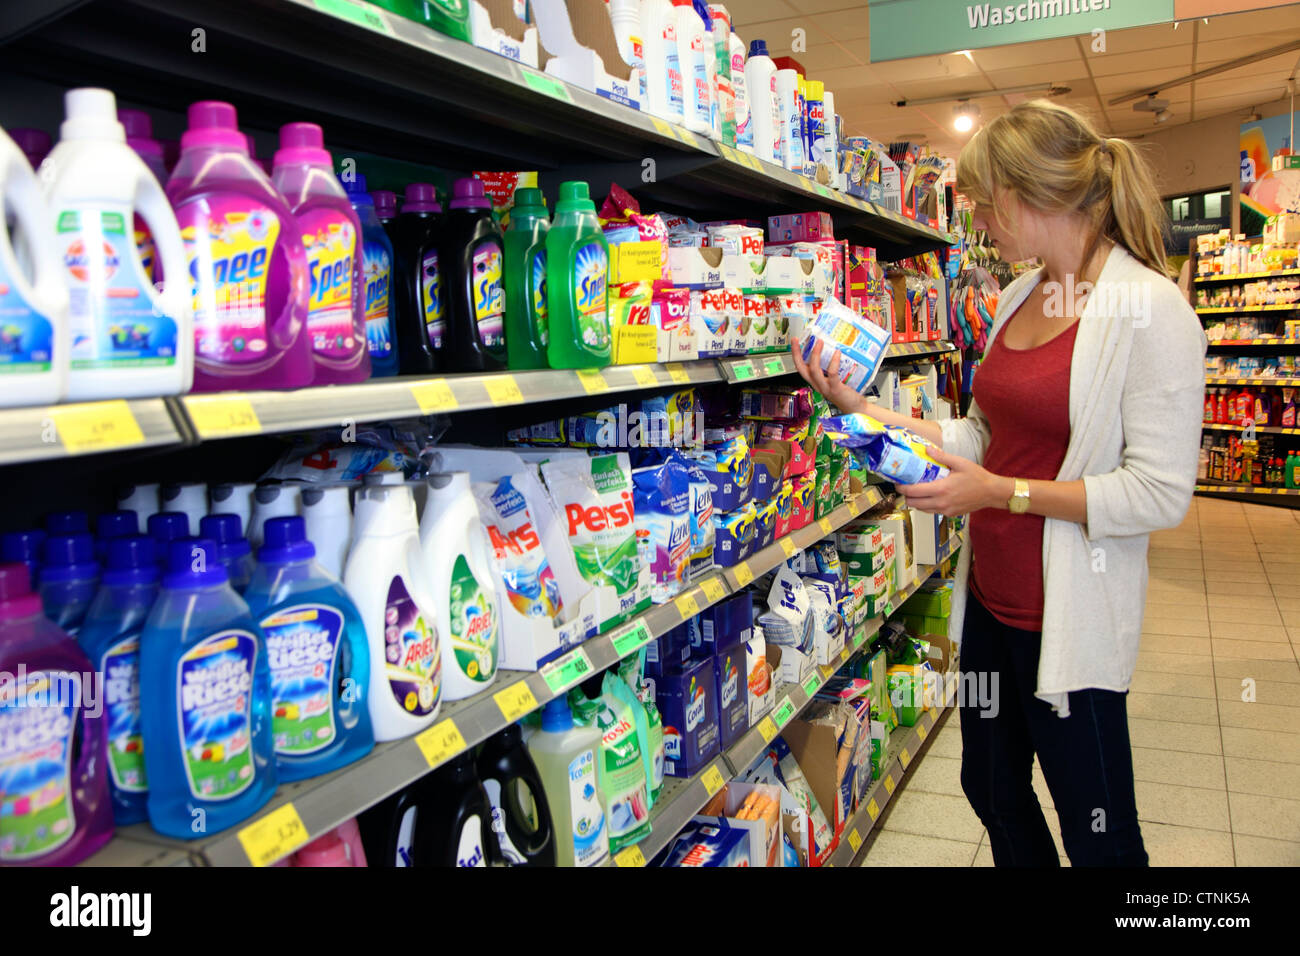 Detergent Store High Resolution Stock Photography and Images - Alamy